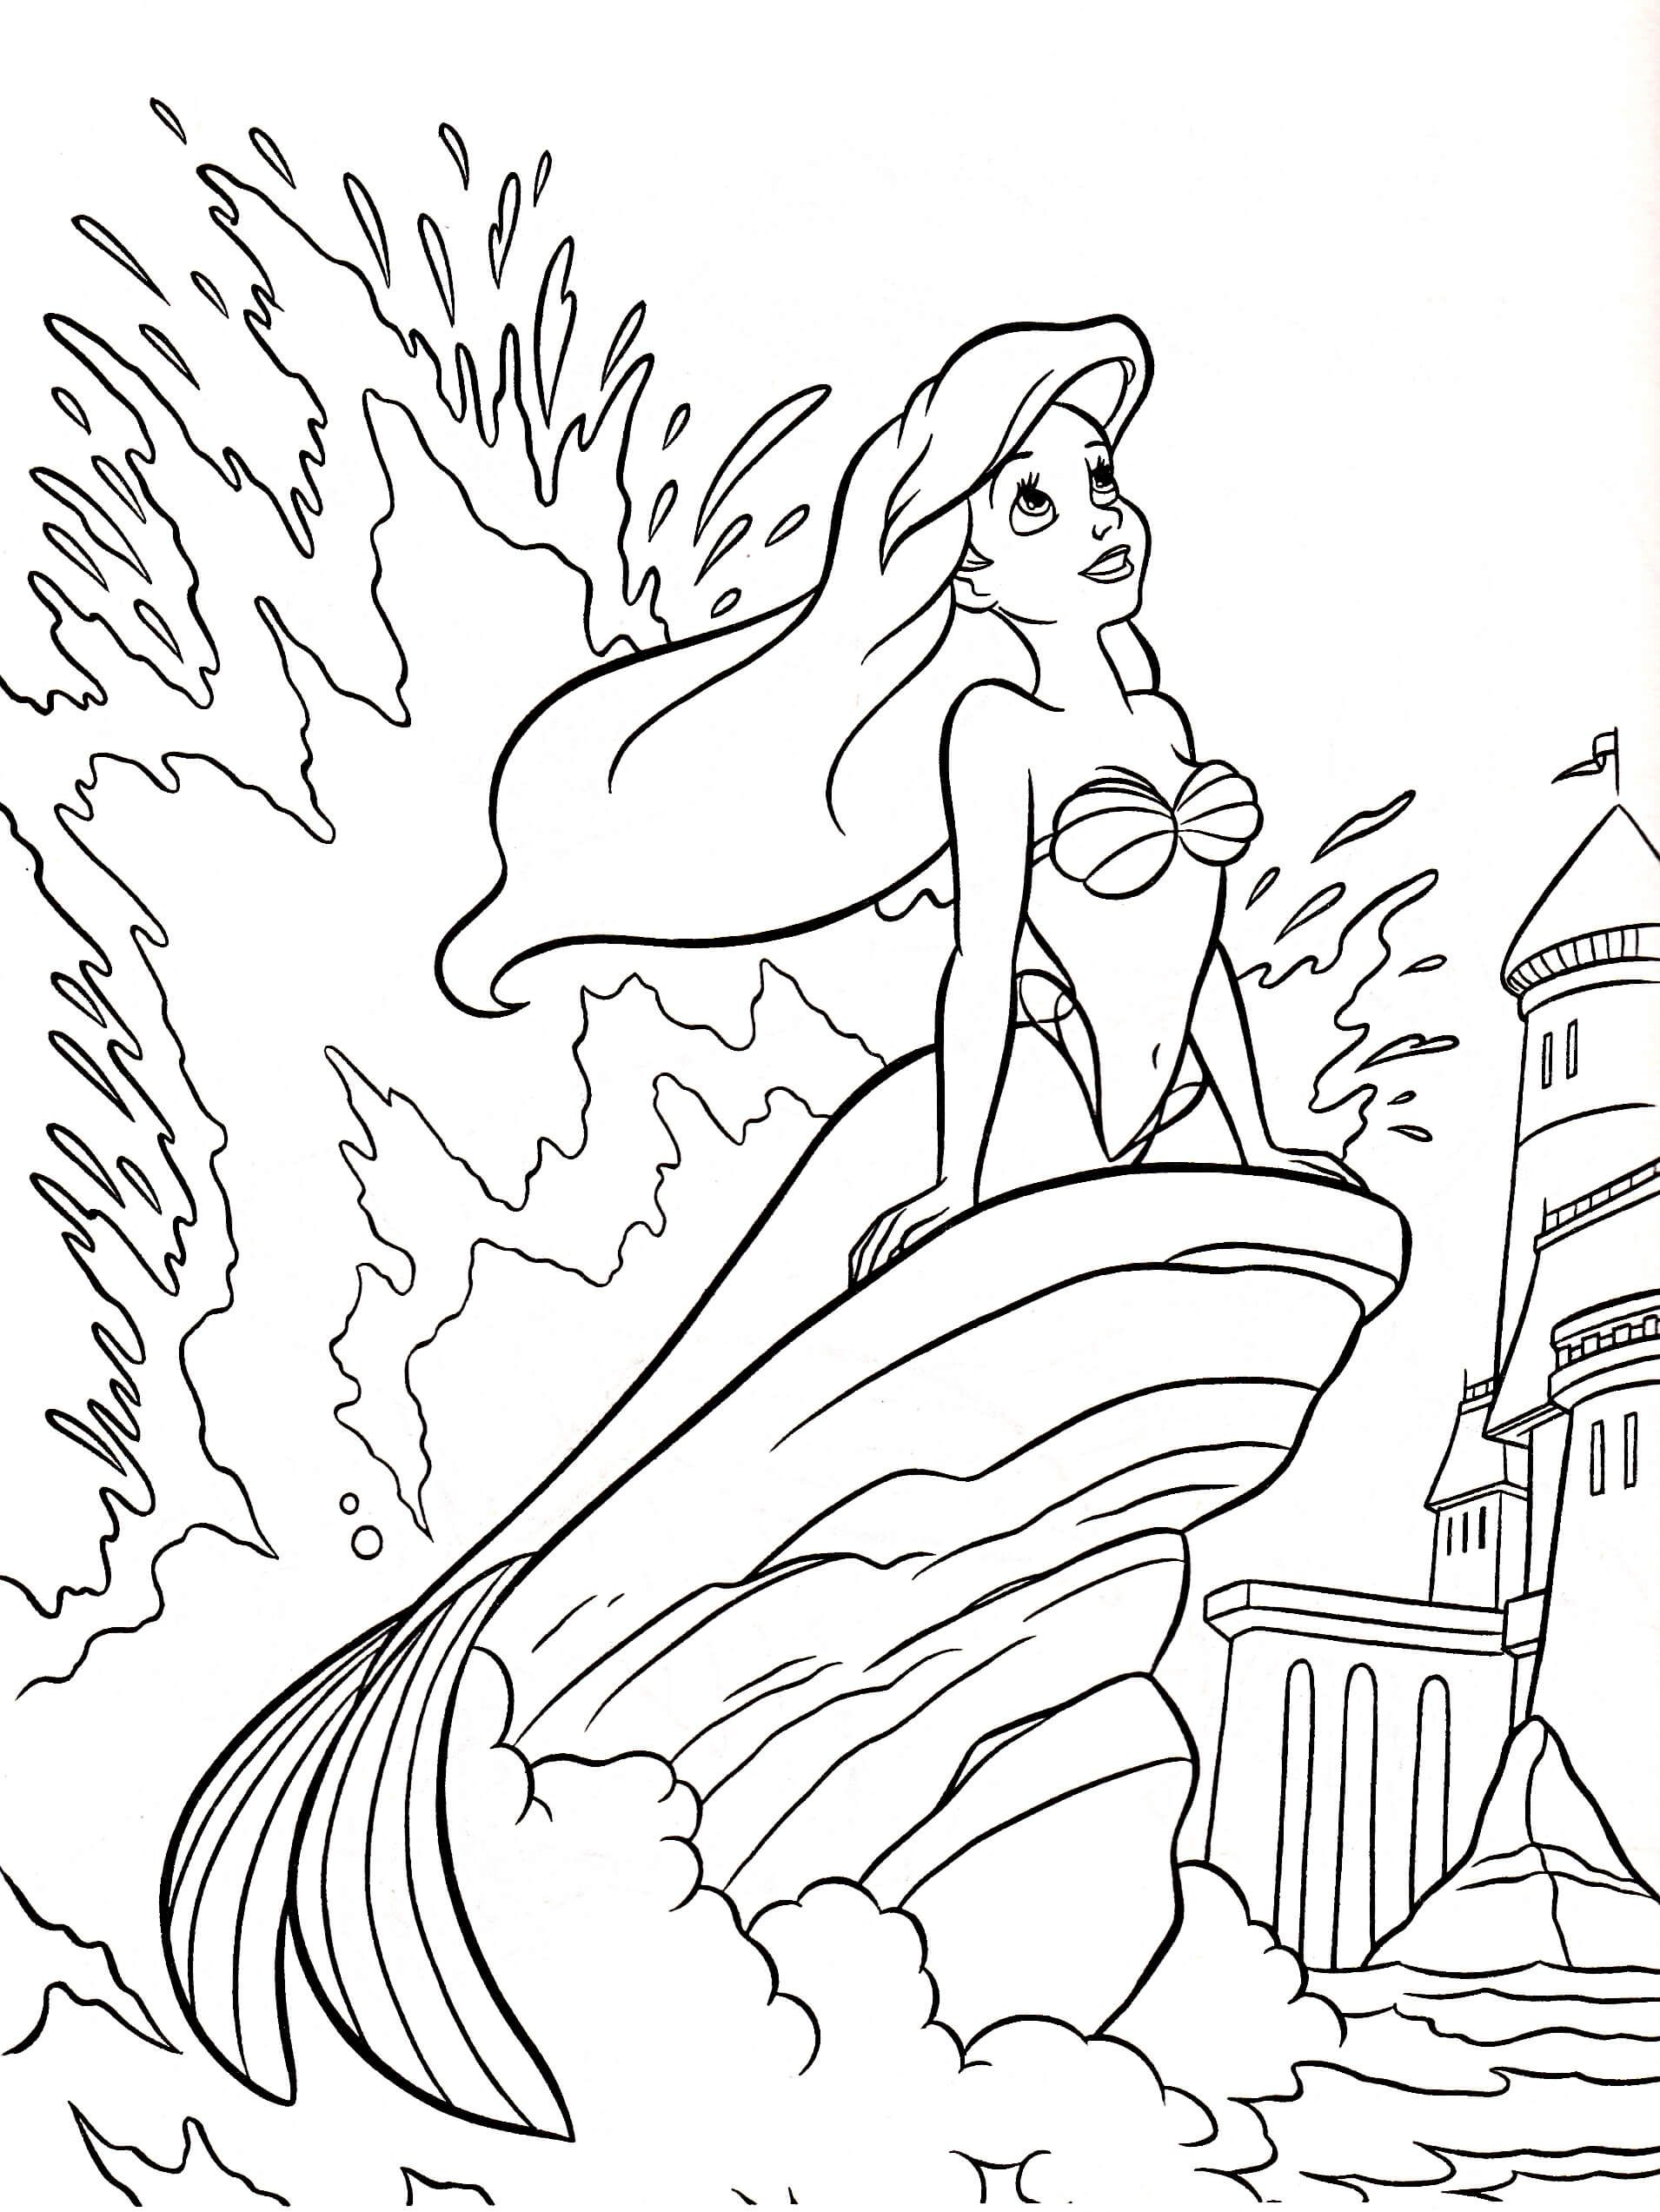 Disney Ariel Coloring Pages | Colorables: The Little Mermaid ...